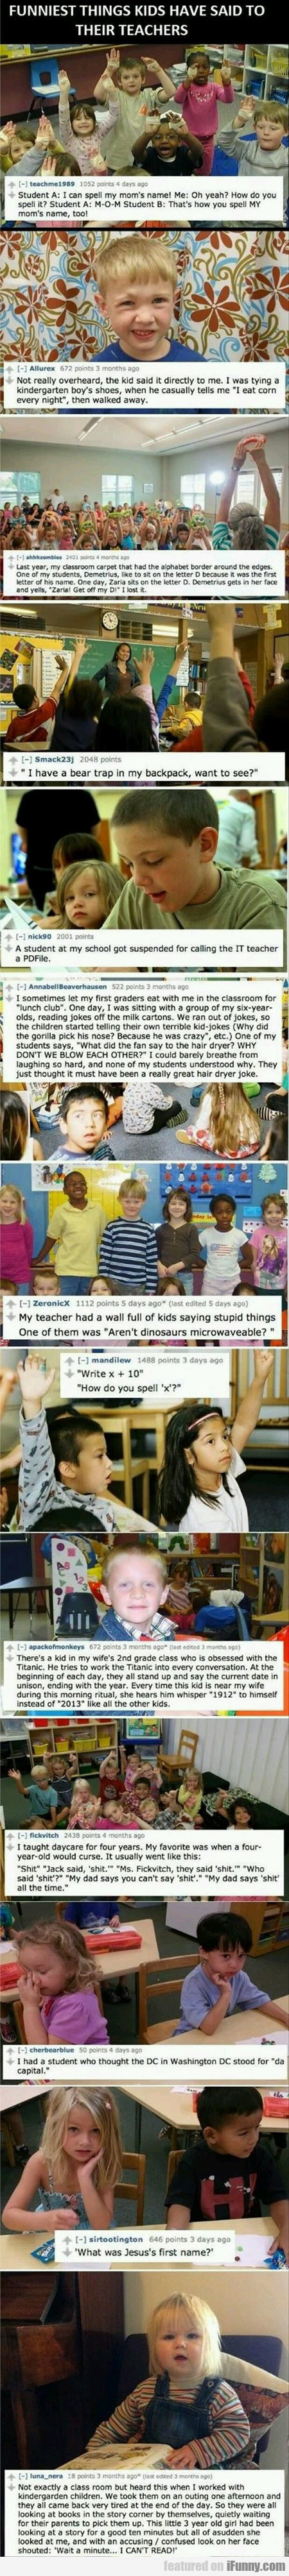 Funniest Things Kids Have Said To Their Teachers